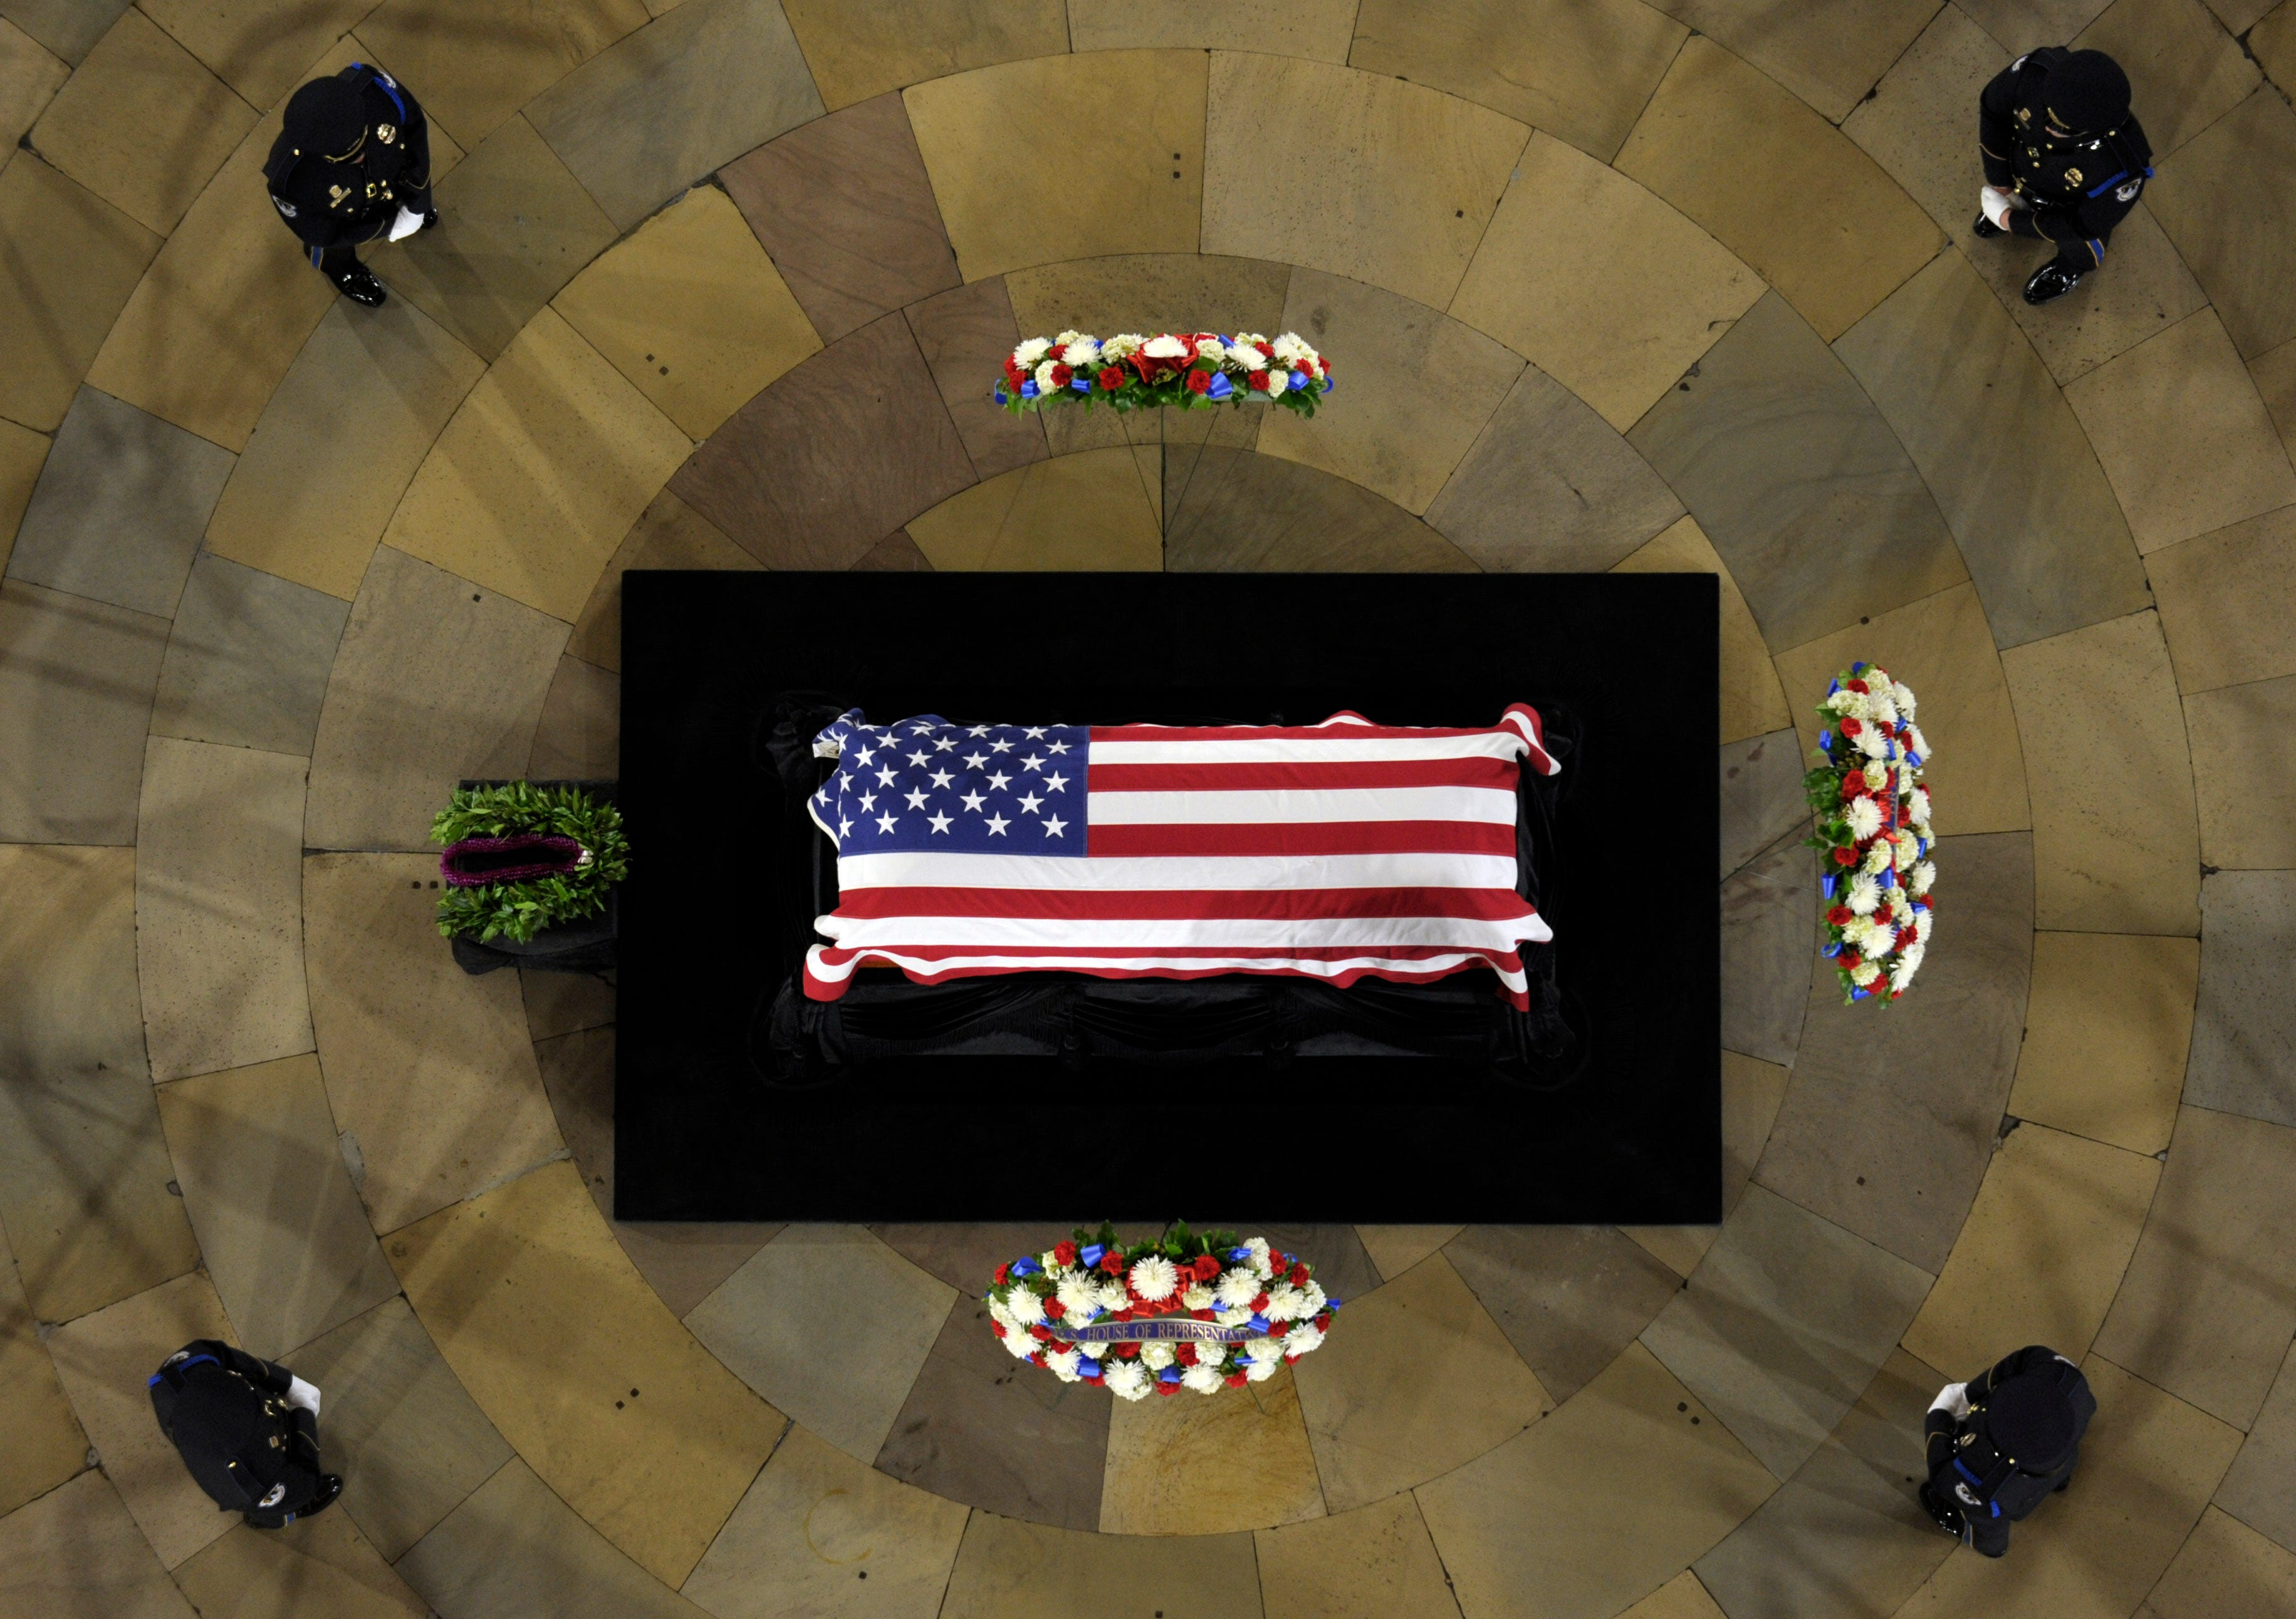 John McCain to lie in state at U.S. Capitol, an honor bestowed on only 30 other people